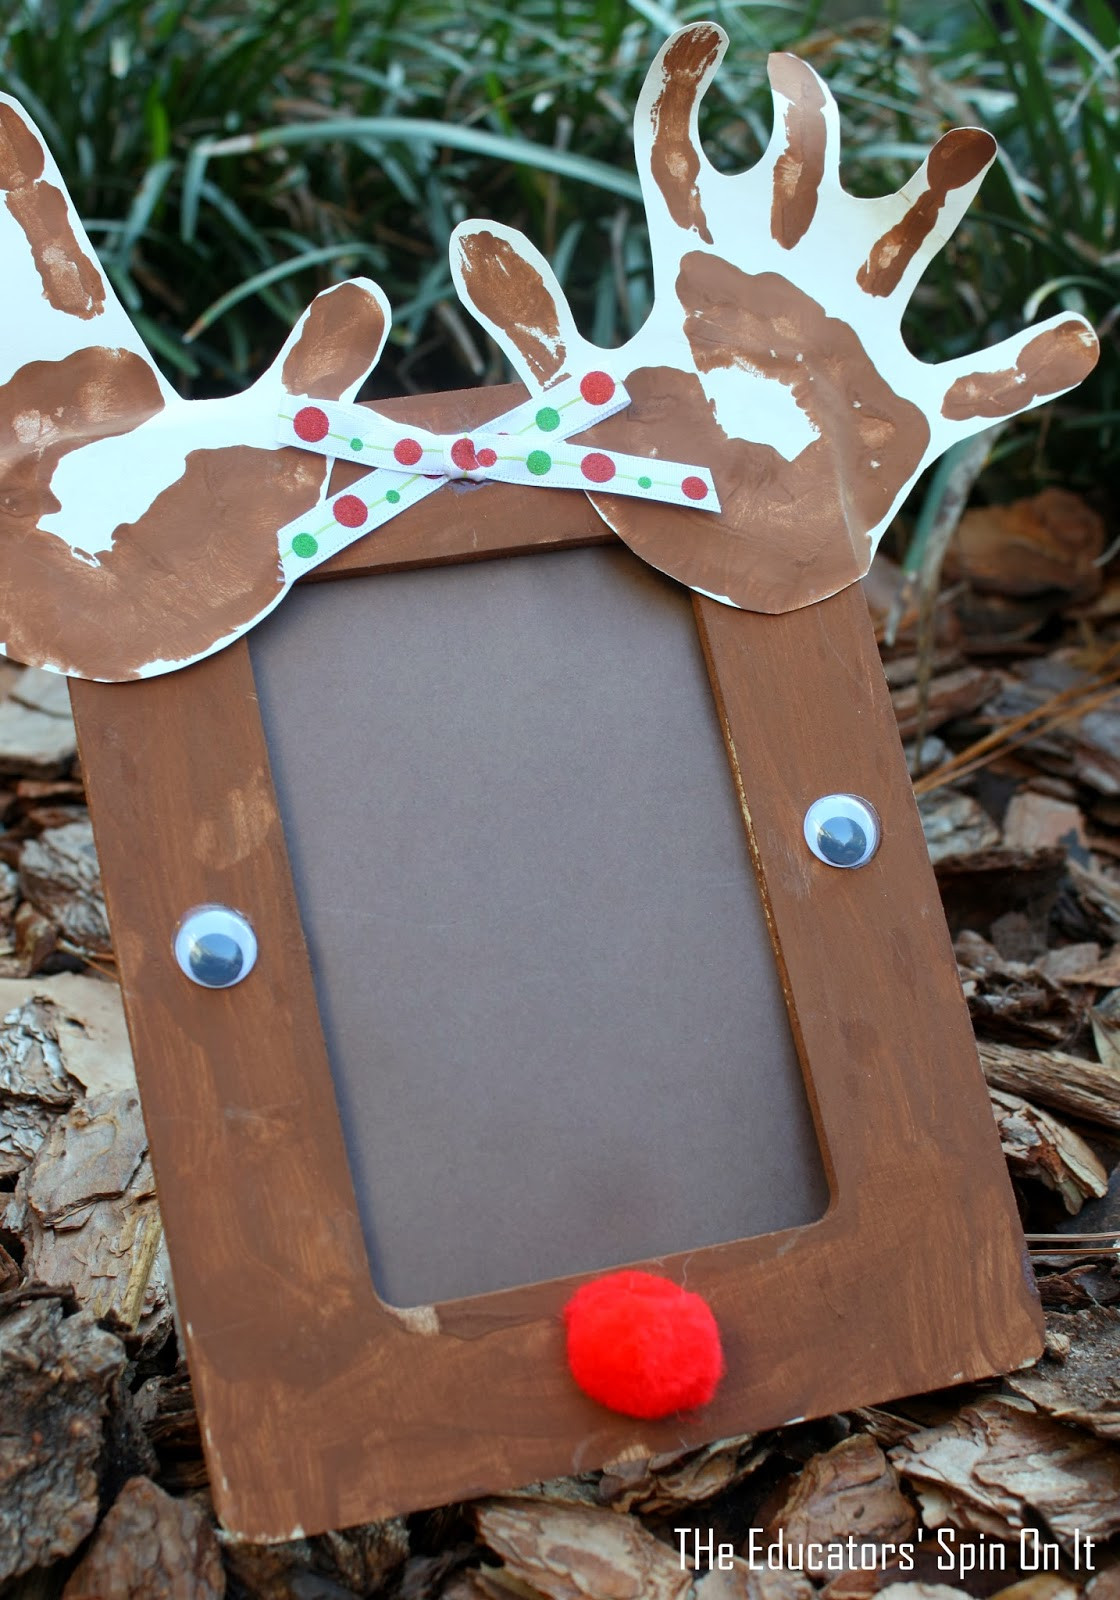 Best ideas about Crafts For Christmas Gifts . Save or Pin The Educators Spin It Preschool Reindeer Crafts and Now.